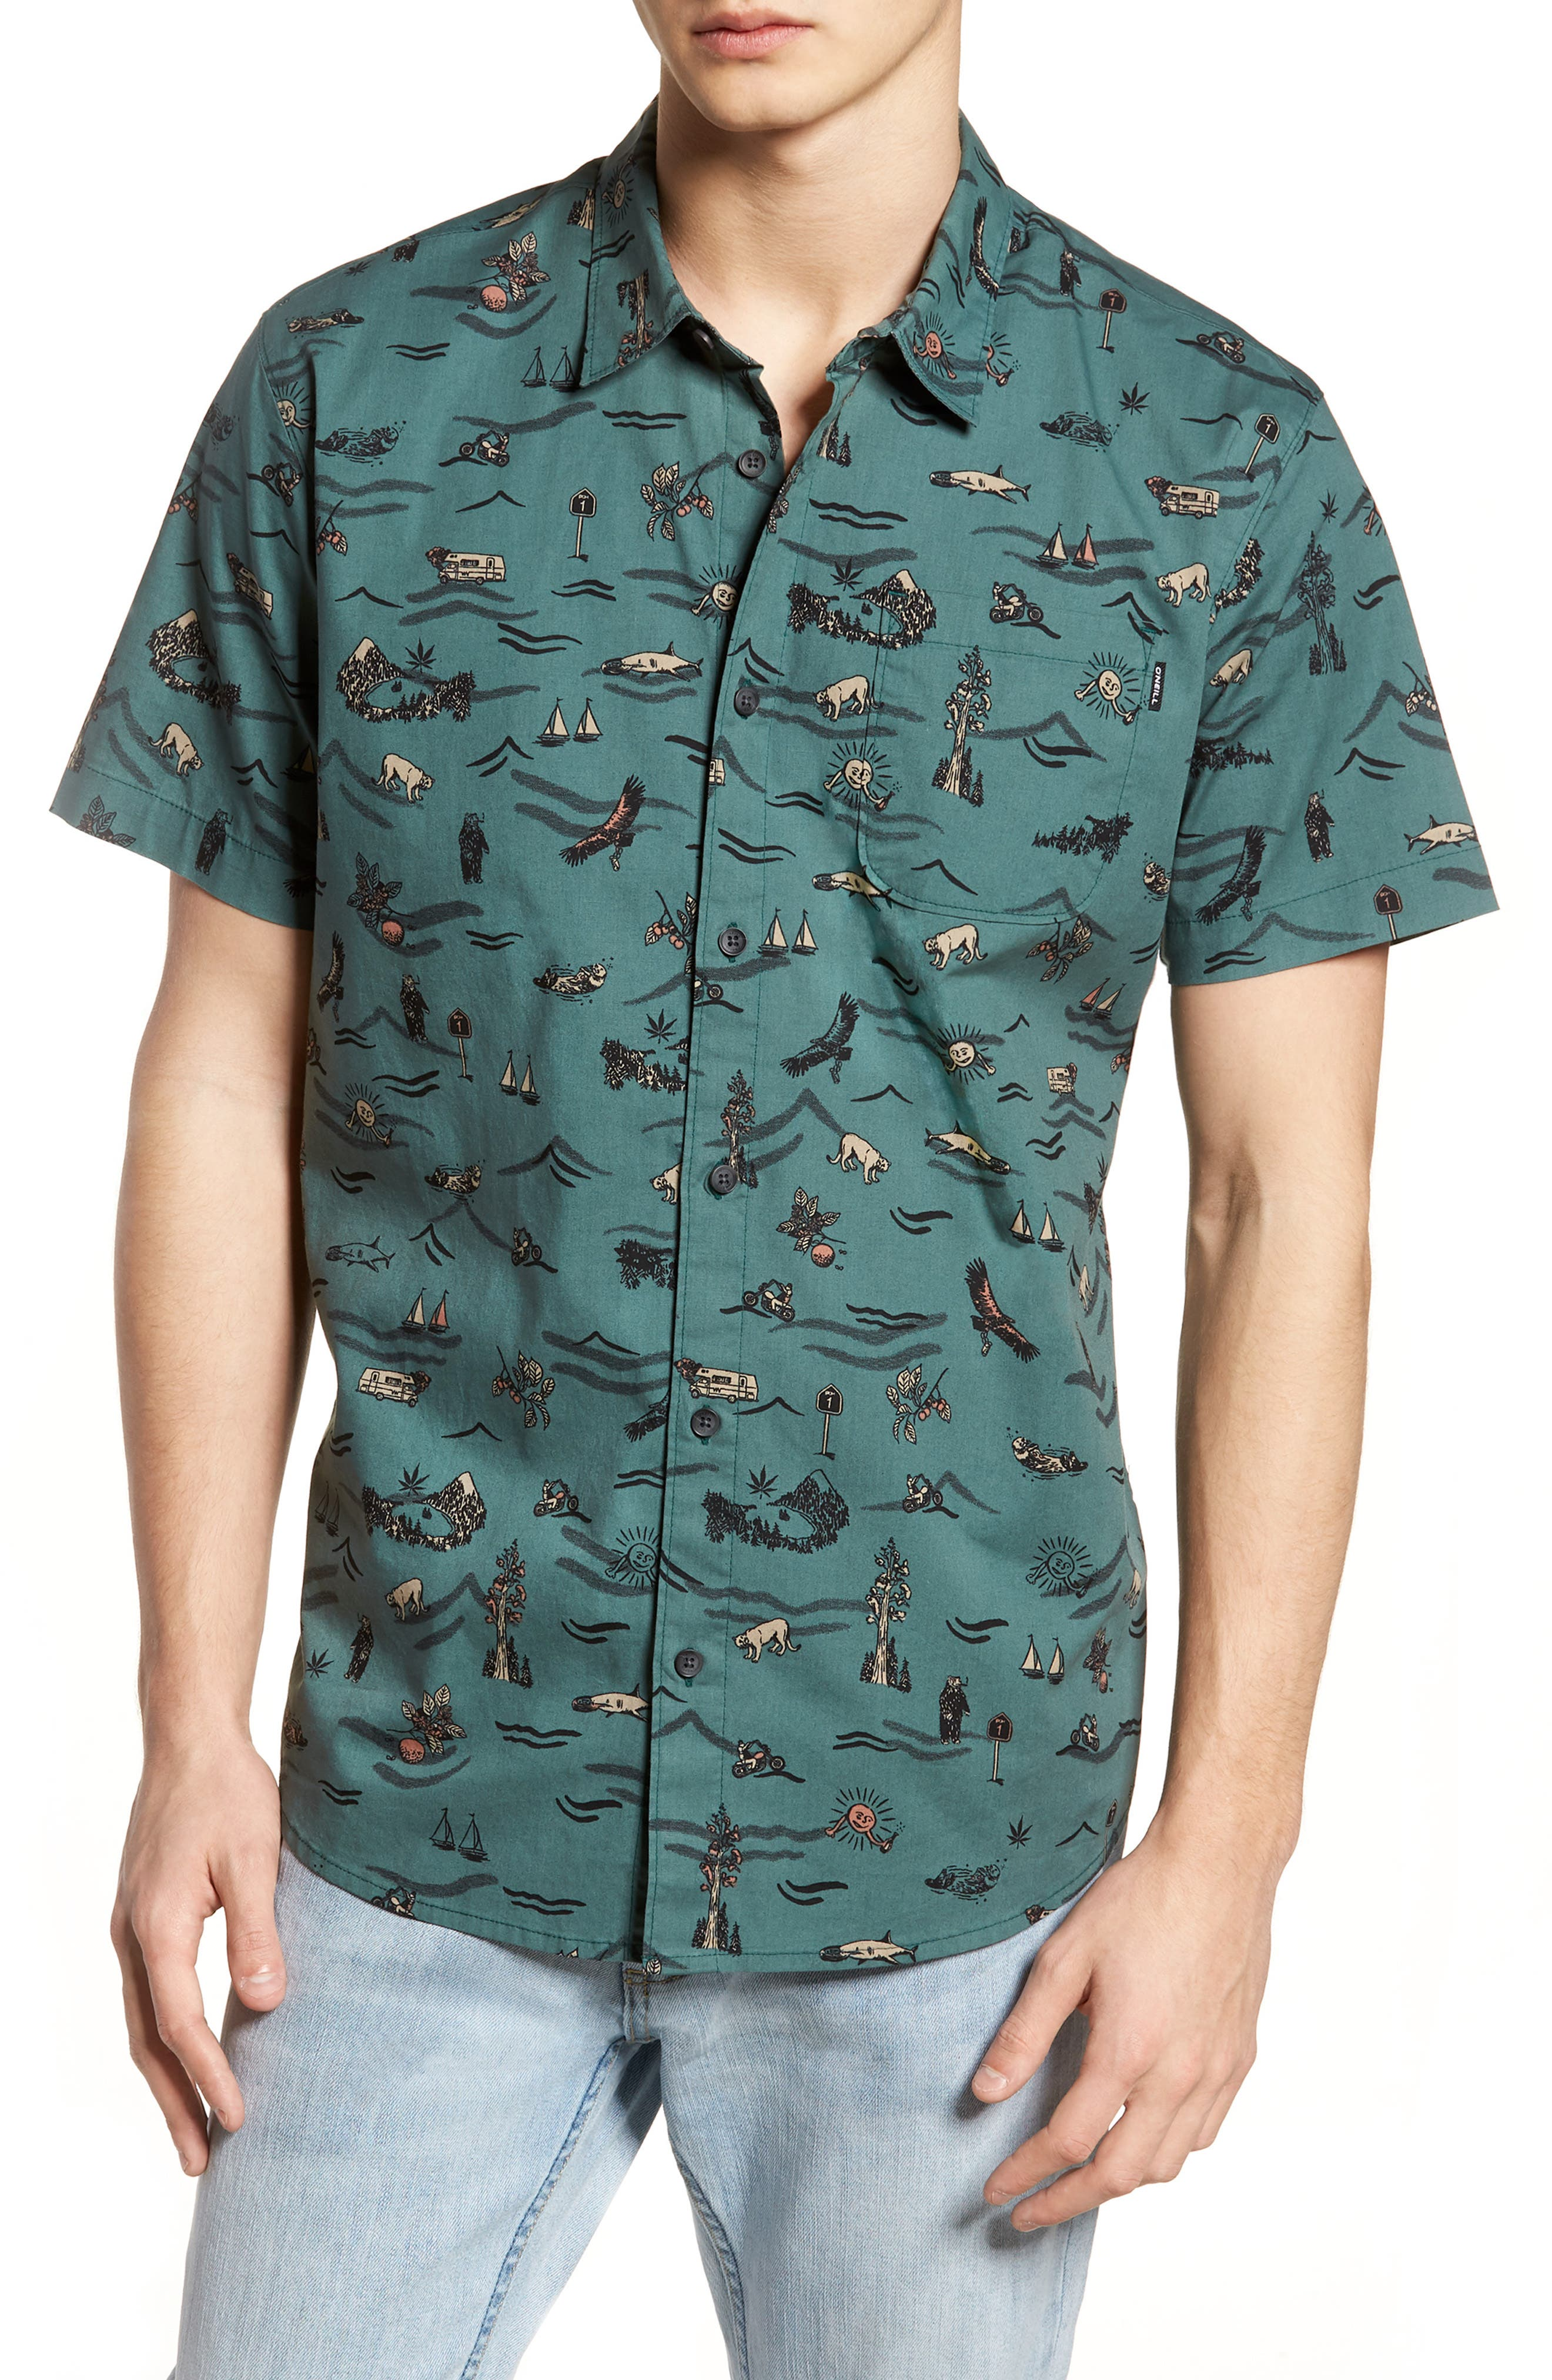 Squawk Short Sleeve Shirt,                             Main thumbnail 1, color,                             300